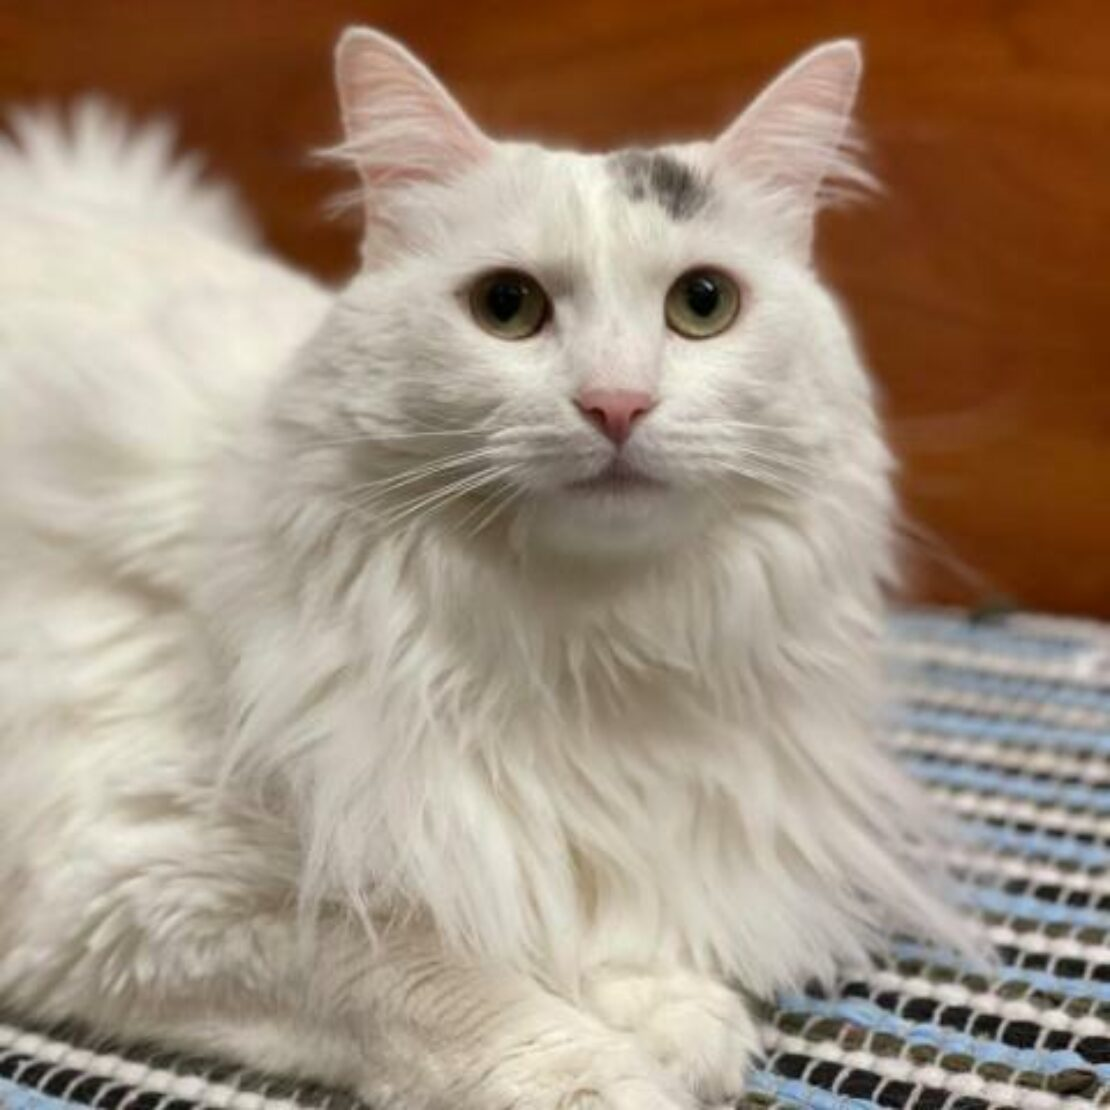 fluffy, white cat meatloafs on a rug and looks at camera. She has a black smudge near her right ear.